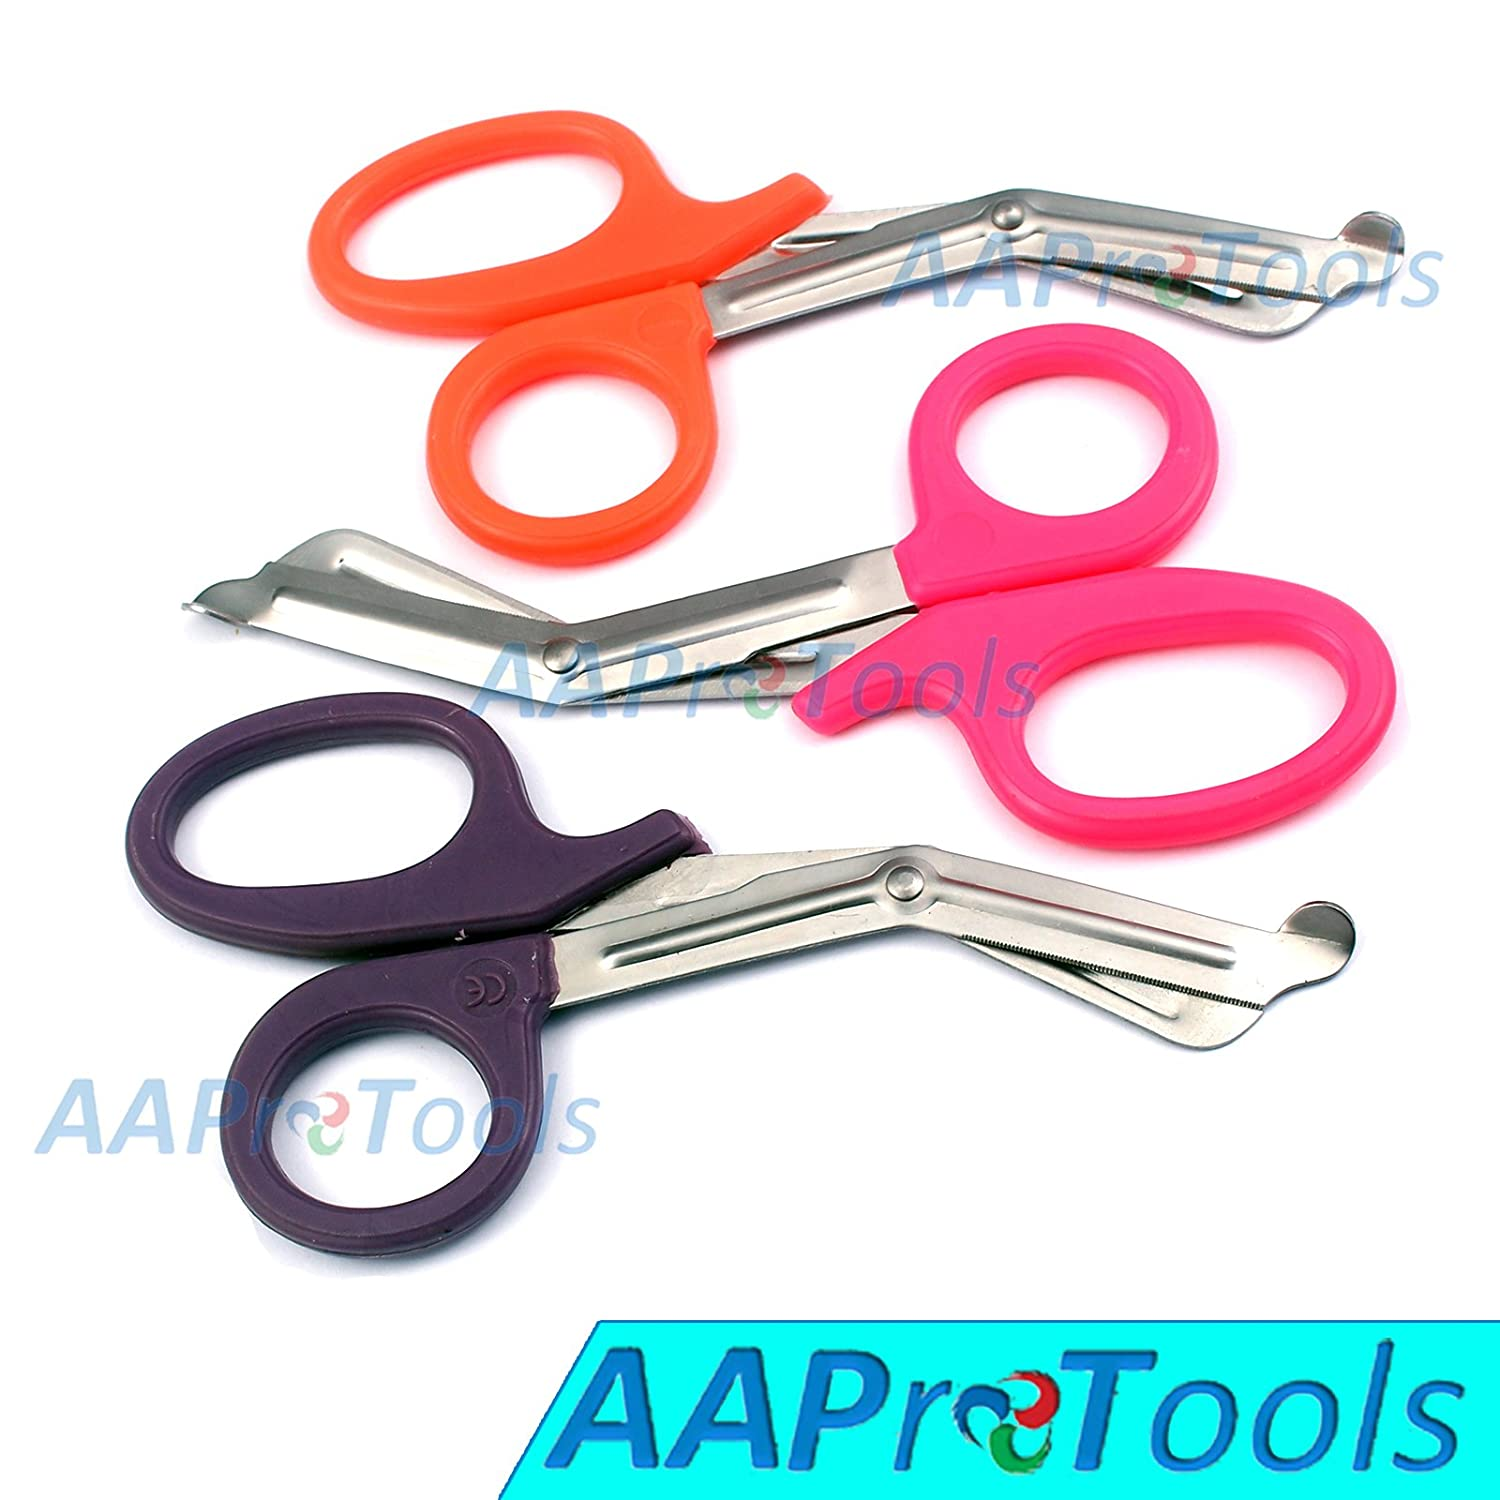 "AAPROTOOLS SET OF 3 ( ORANGE PINK PURPLE ) TRAUMA PARAMEDIC EMT SHEARS SCISSORS 7.5"" A+ QUALITY"